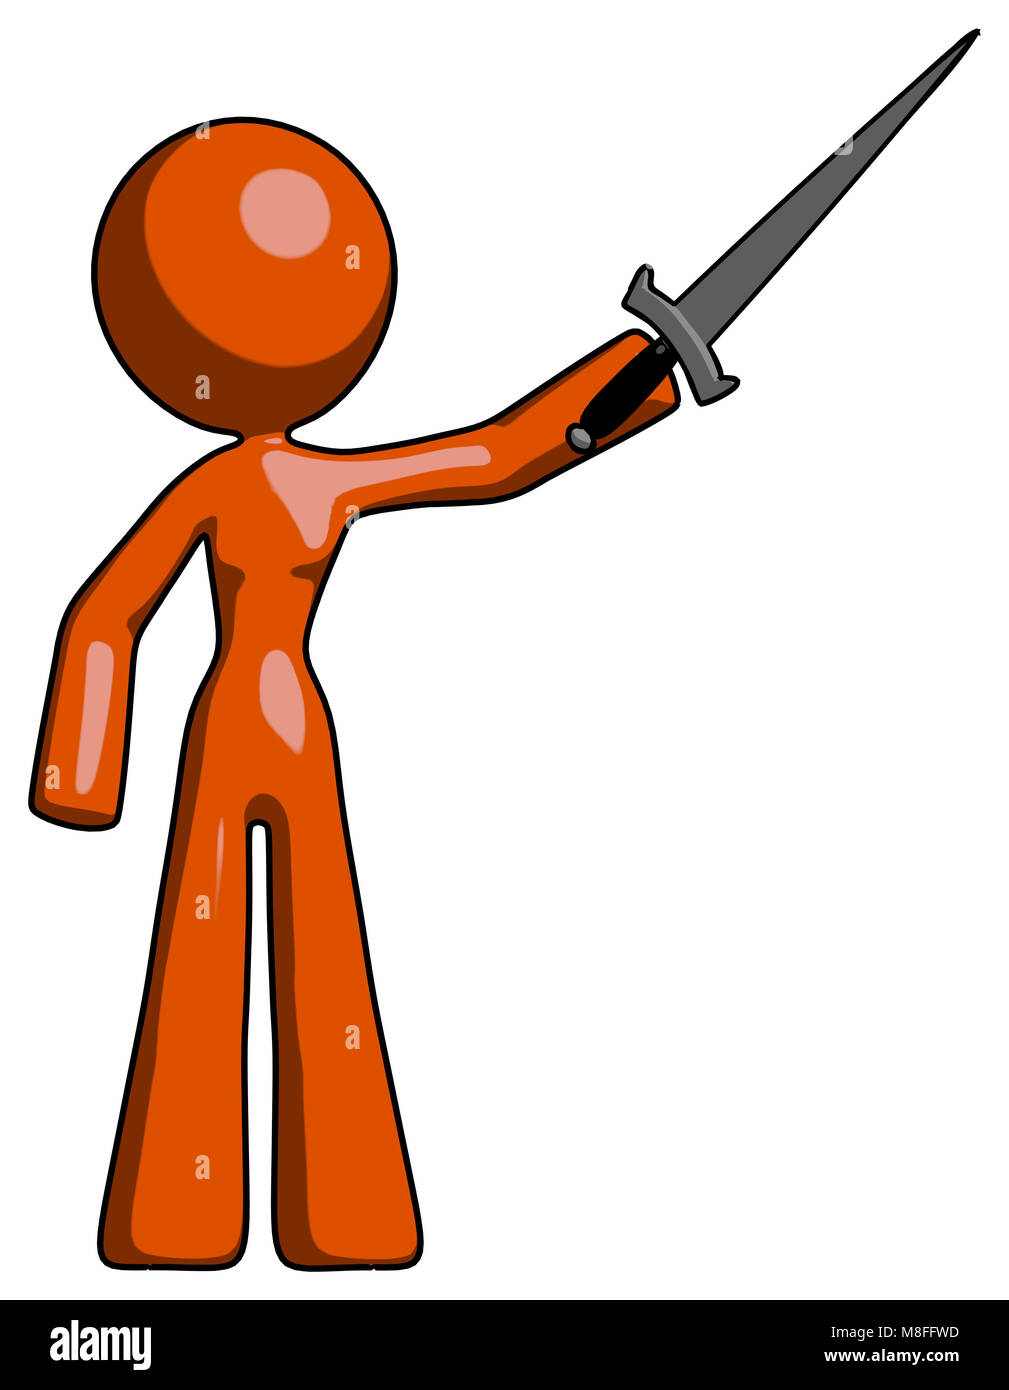 Orange design mascot woman holding sword in the air victoriously. Stock Photo